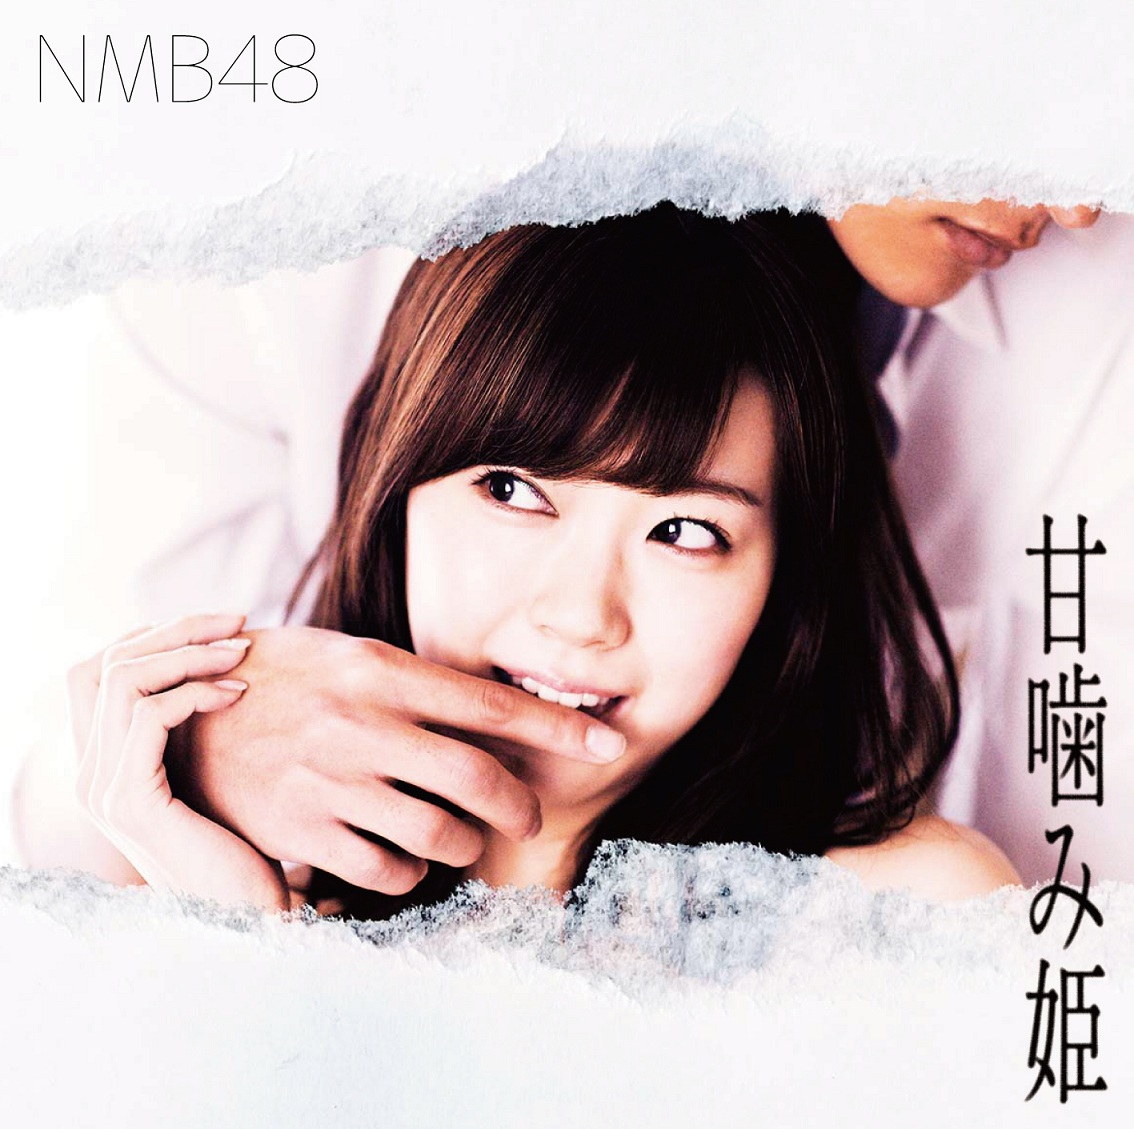 20160423.15.21 NMB48 - Amagami Hime (Type A) cover 3.jpg